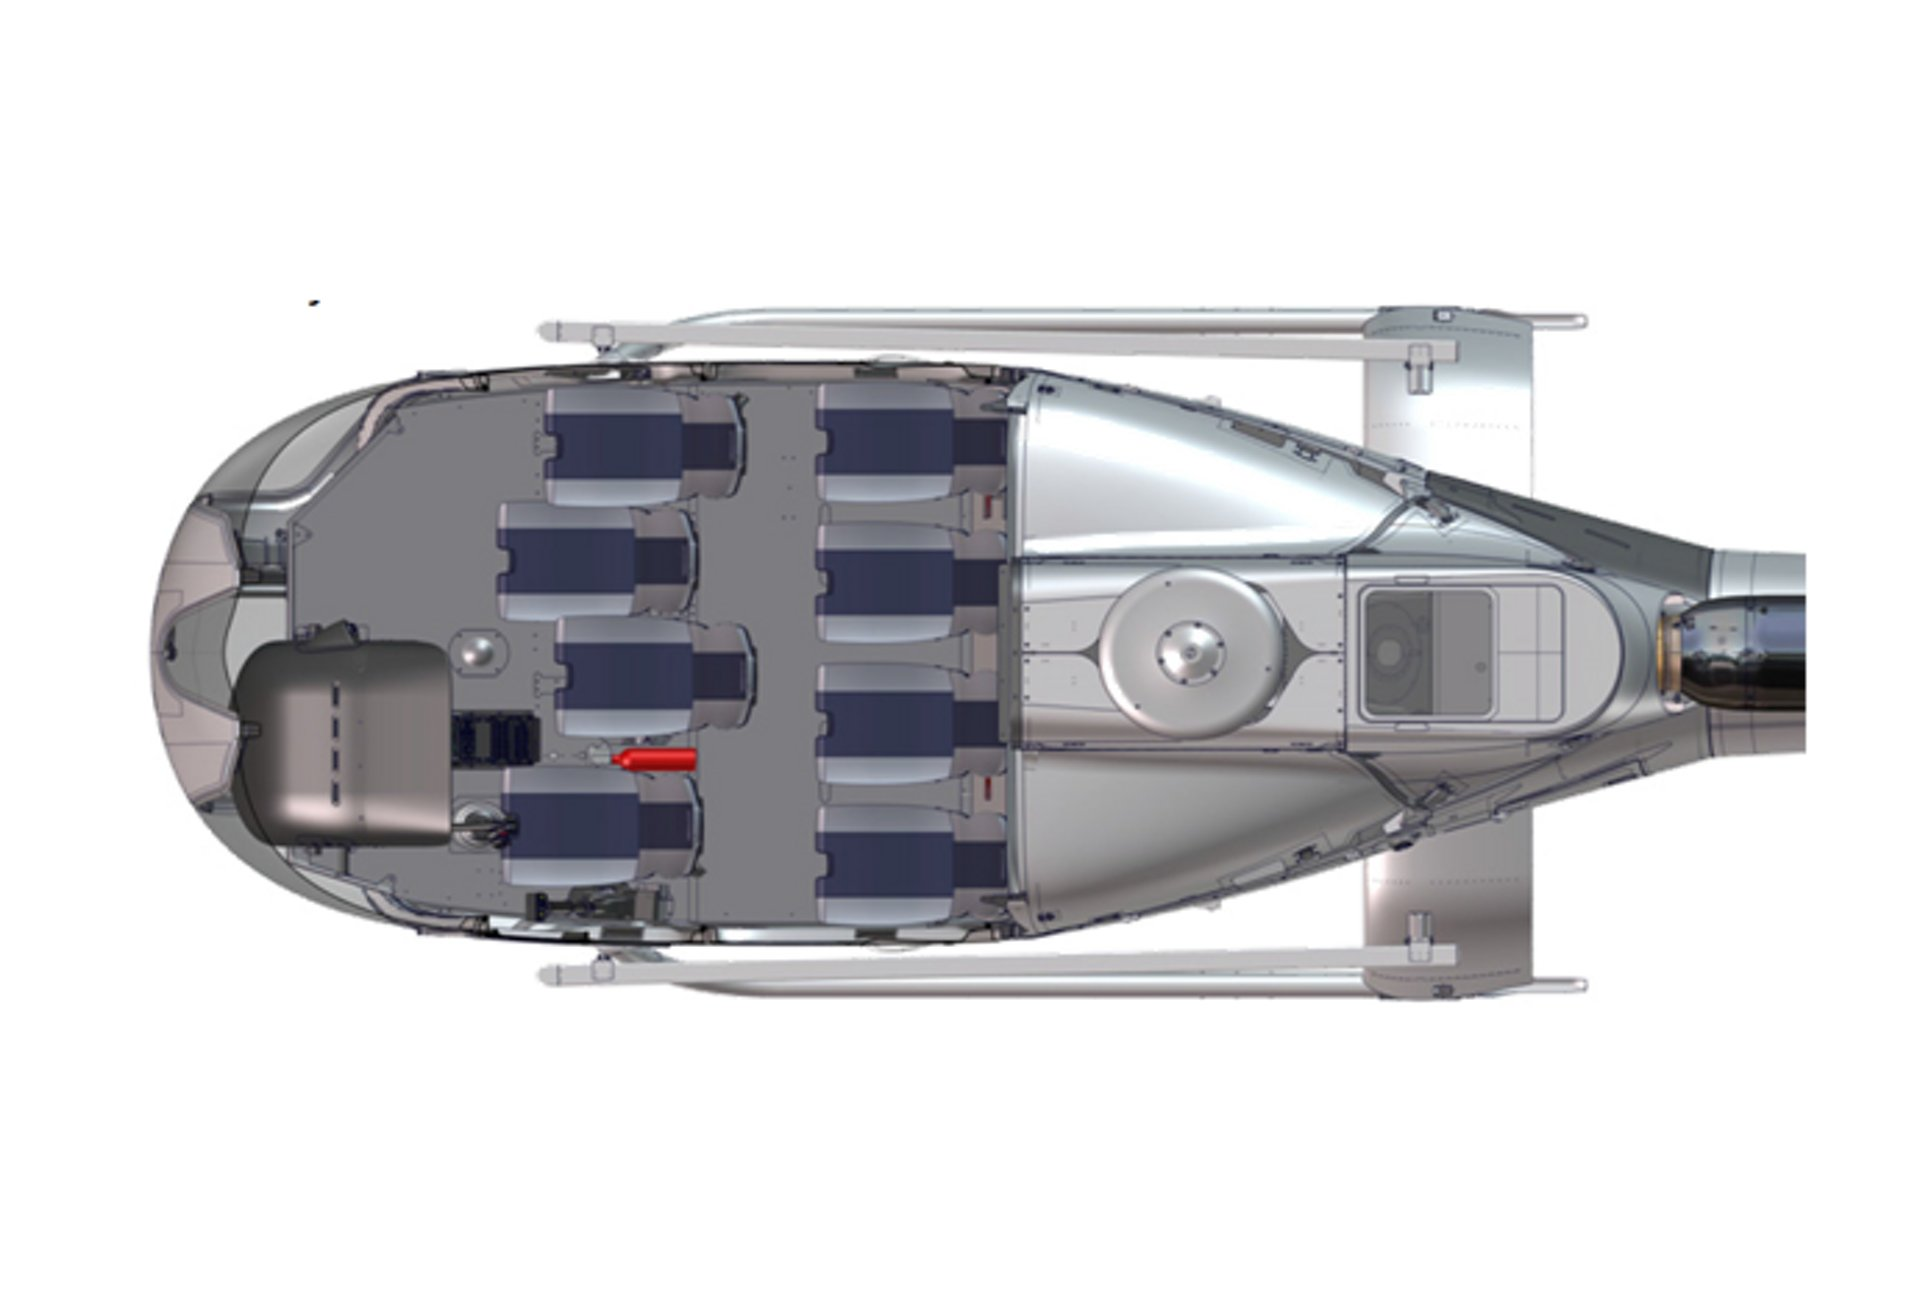 An Airbus H130 helicopter cabin configuration with seven seats for tourism flights